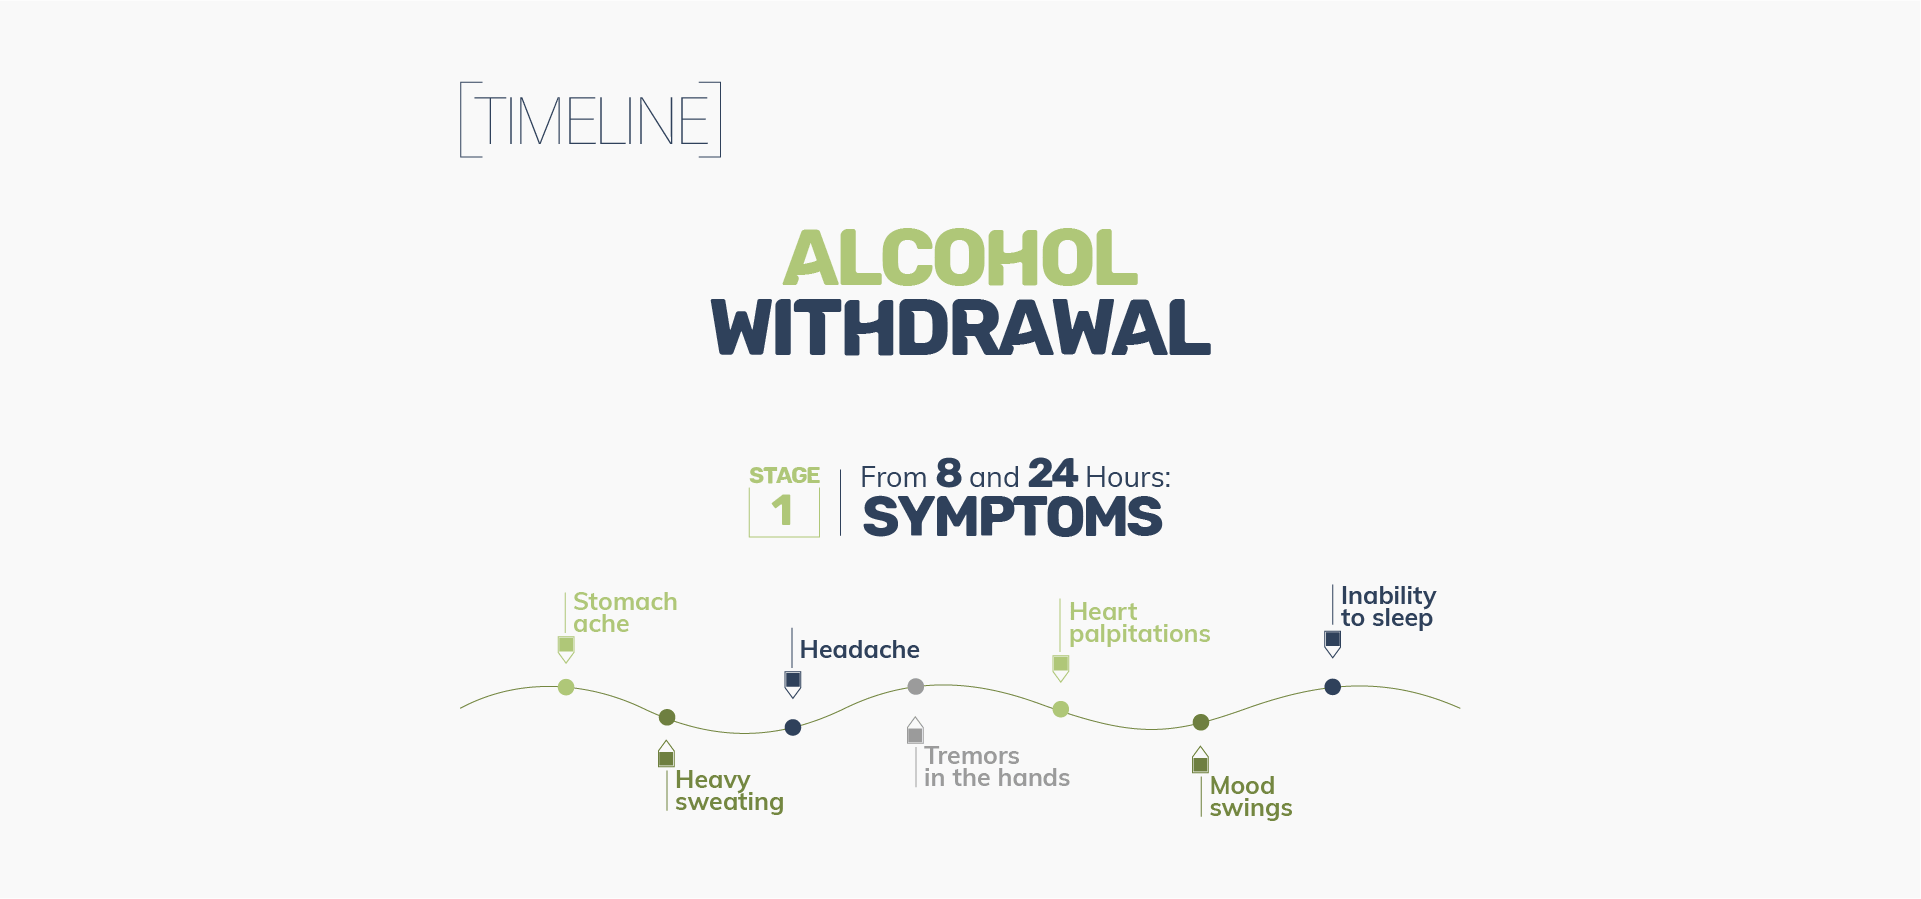 Alcohol Withdrawal and Symptoms